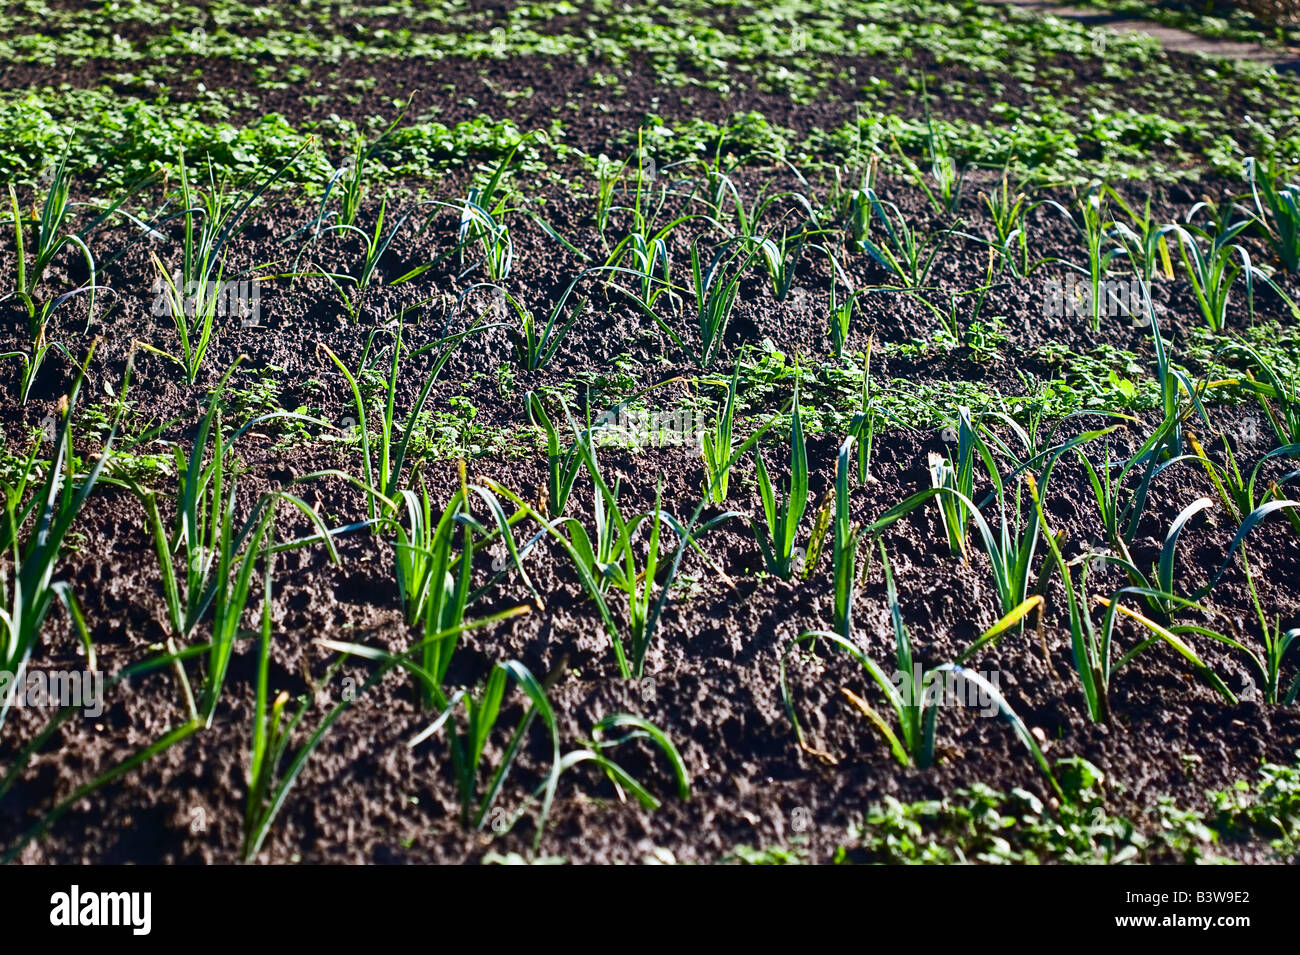 leek and salad plants in kitchen garden isle of Ouessant Brittany France - Stock Image